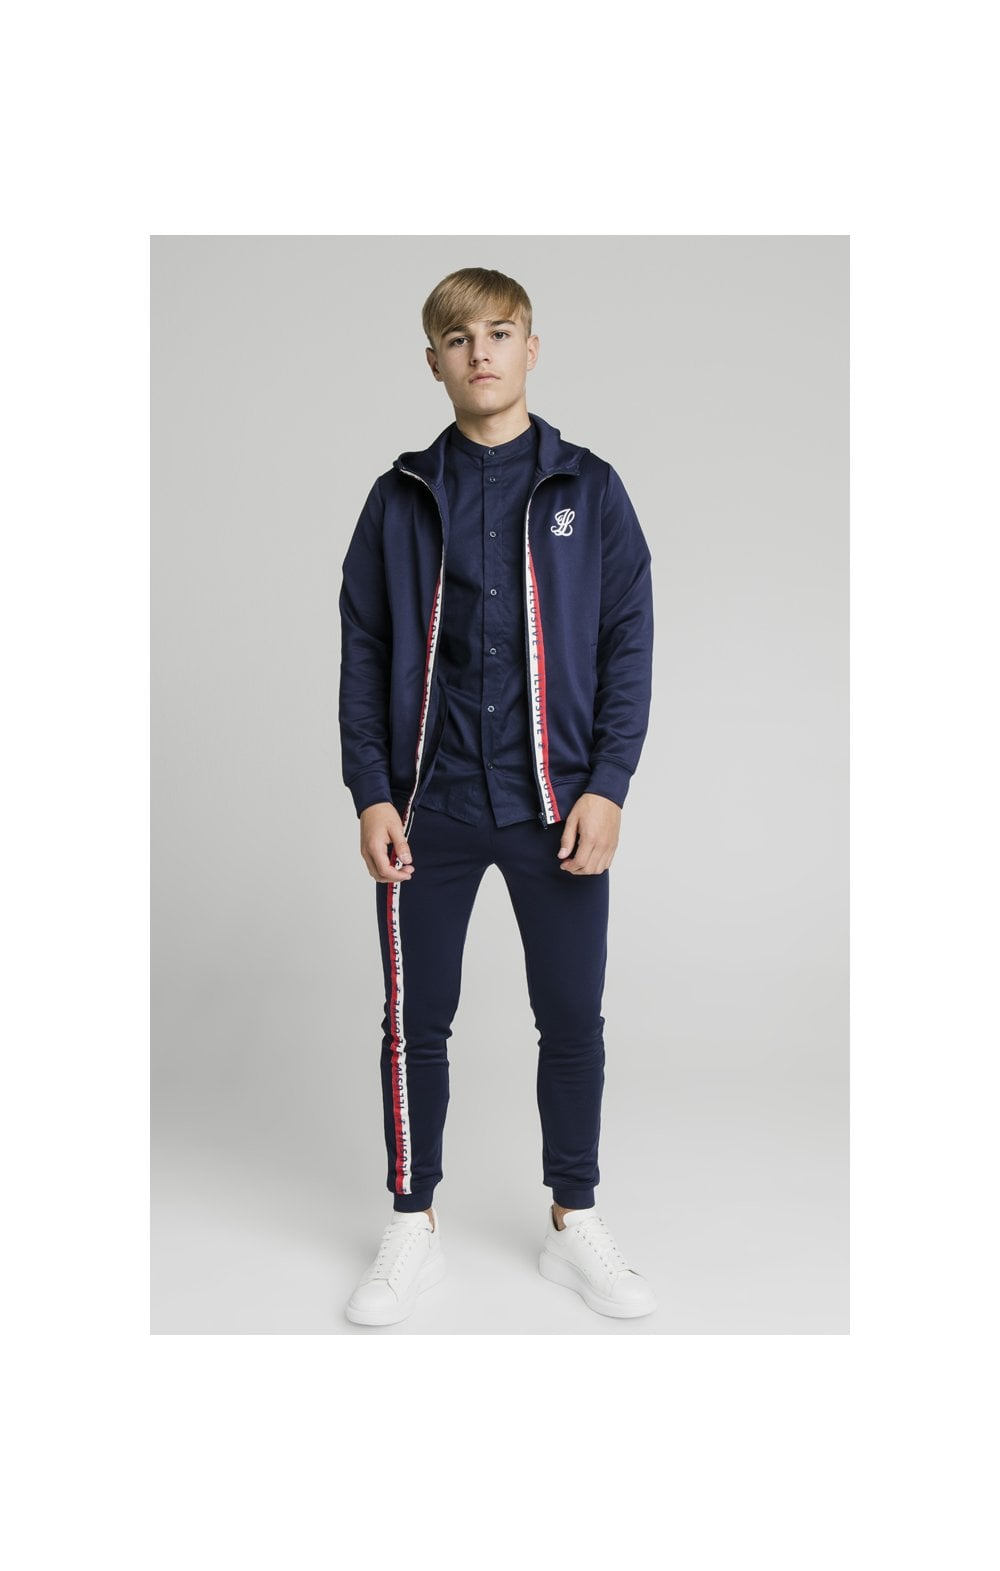 Load image into Gallery viewer, Illusive London Central Tape Zip Through Hoodie - Navy (2)